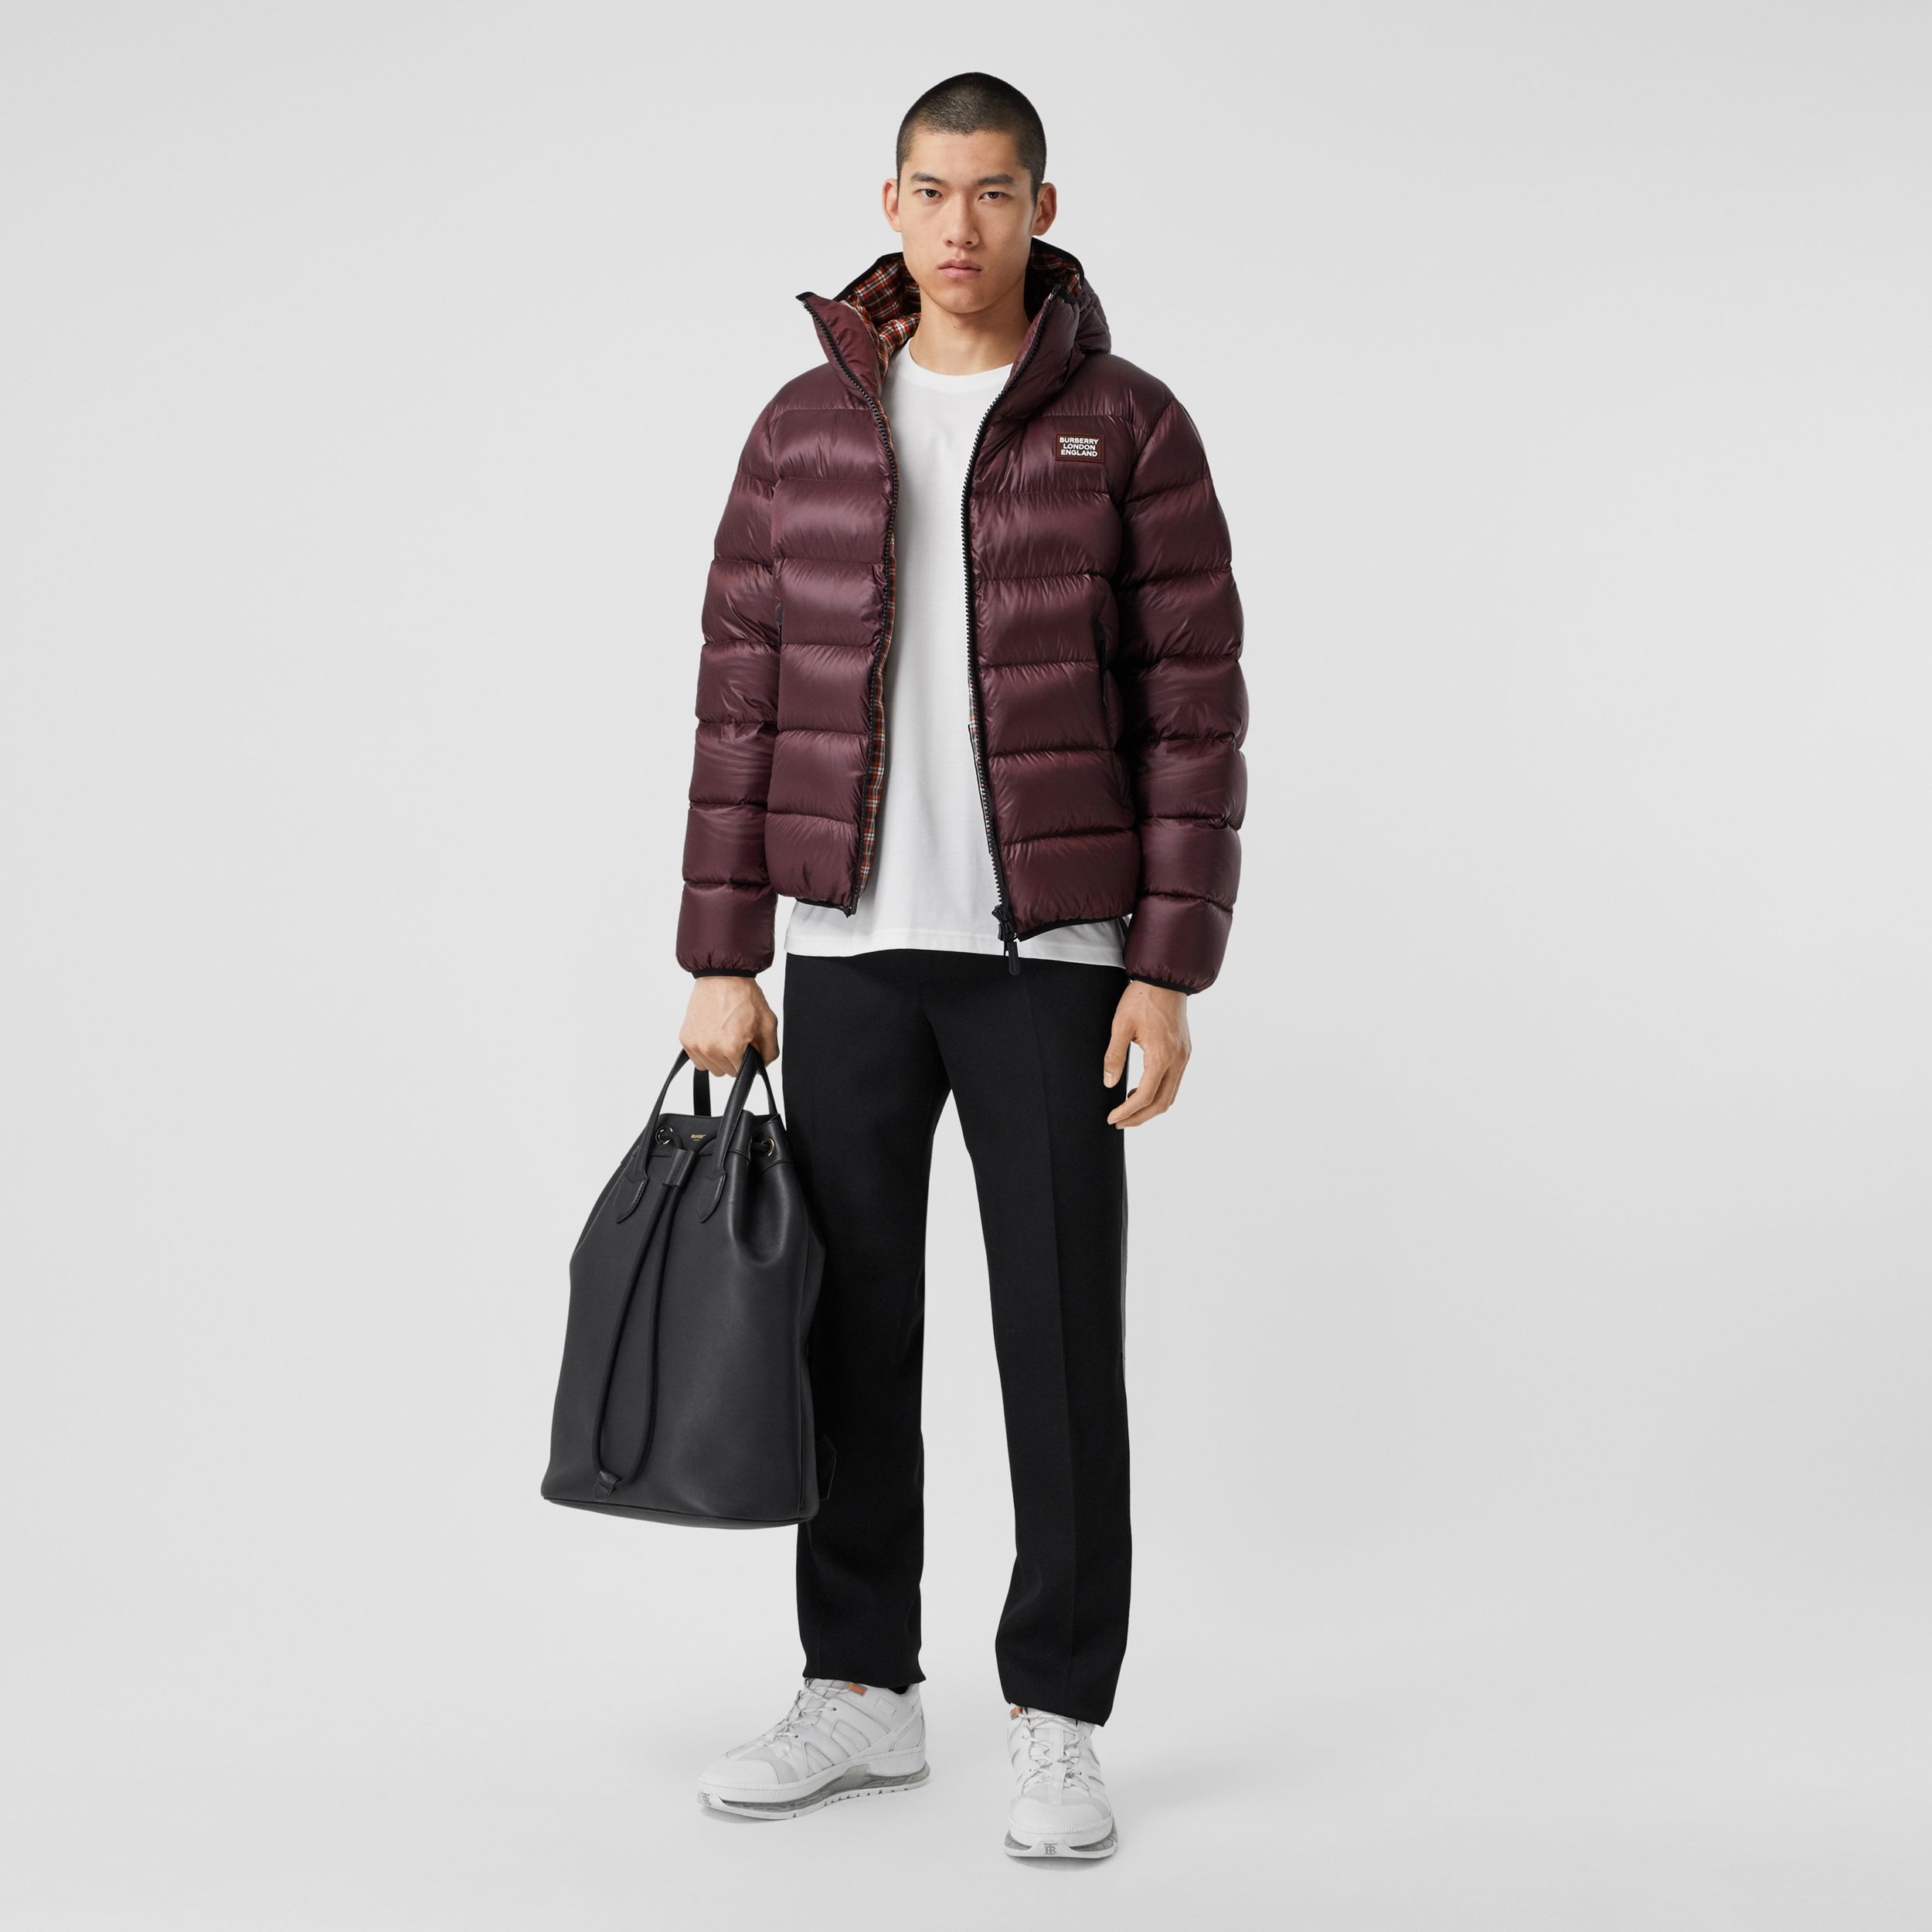 Logo Appliqué Hooded Puffer Jacket in Dark Plum | Burberry - 1